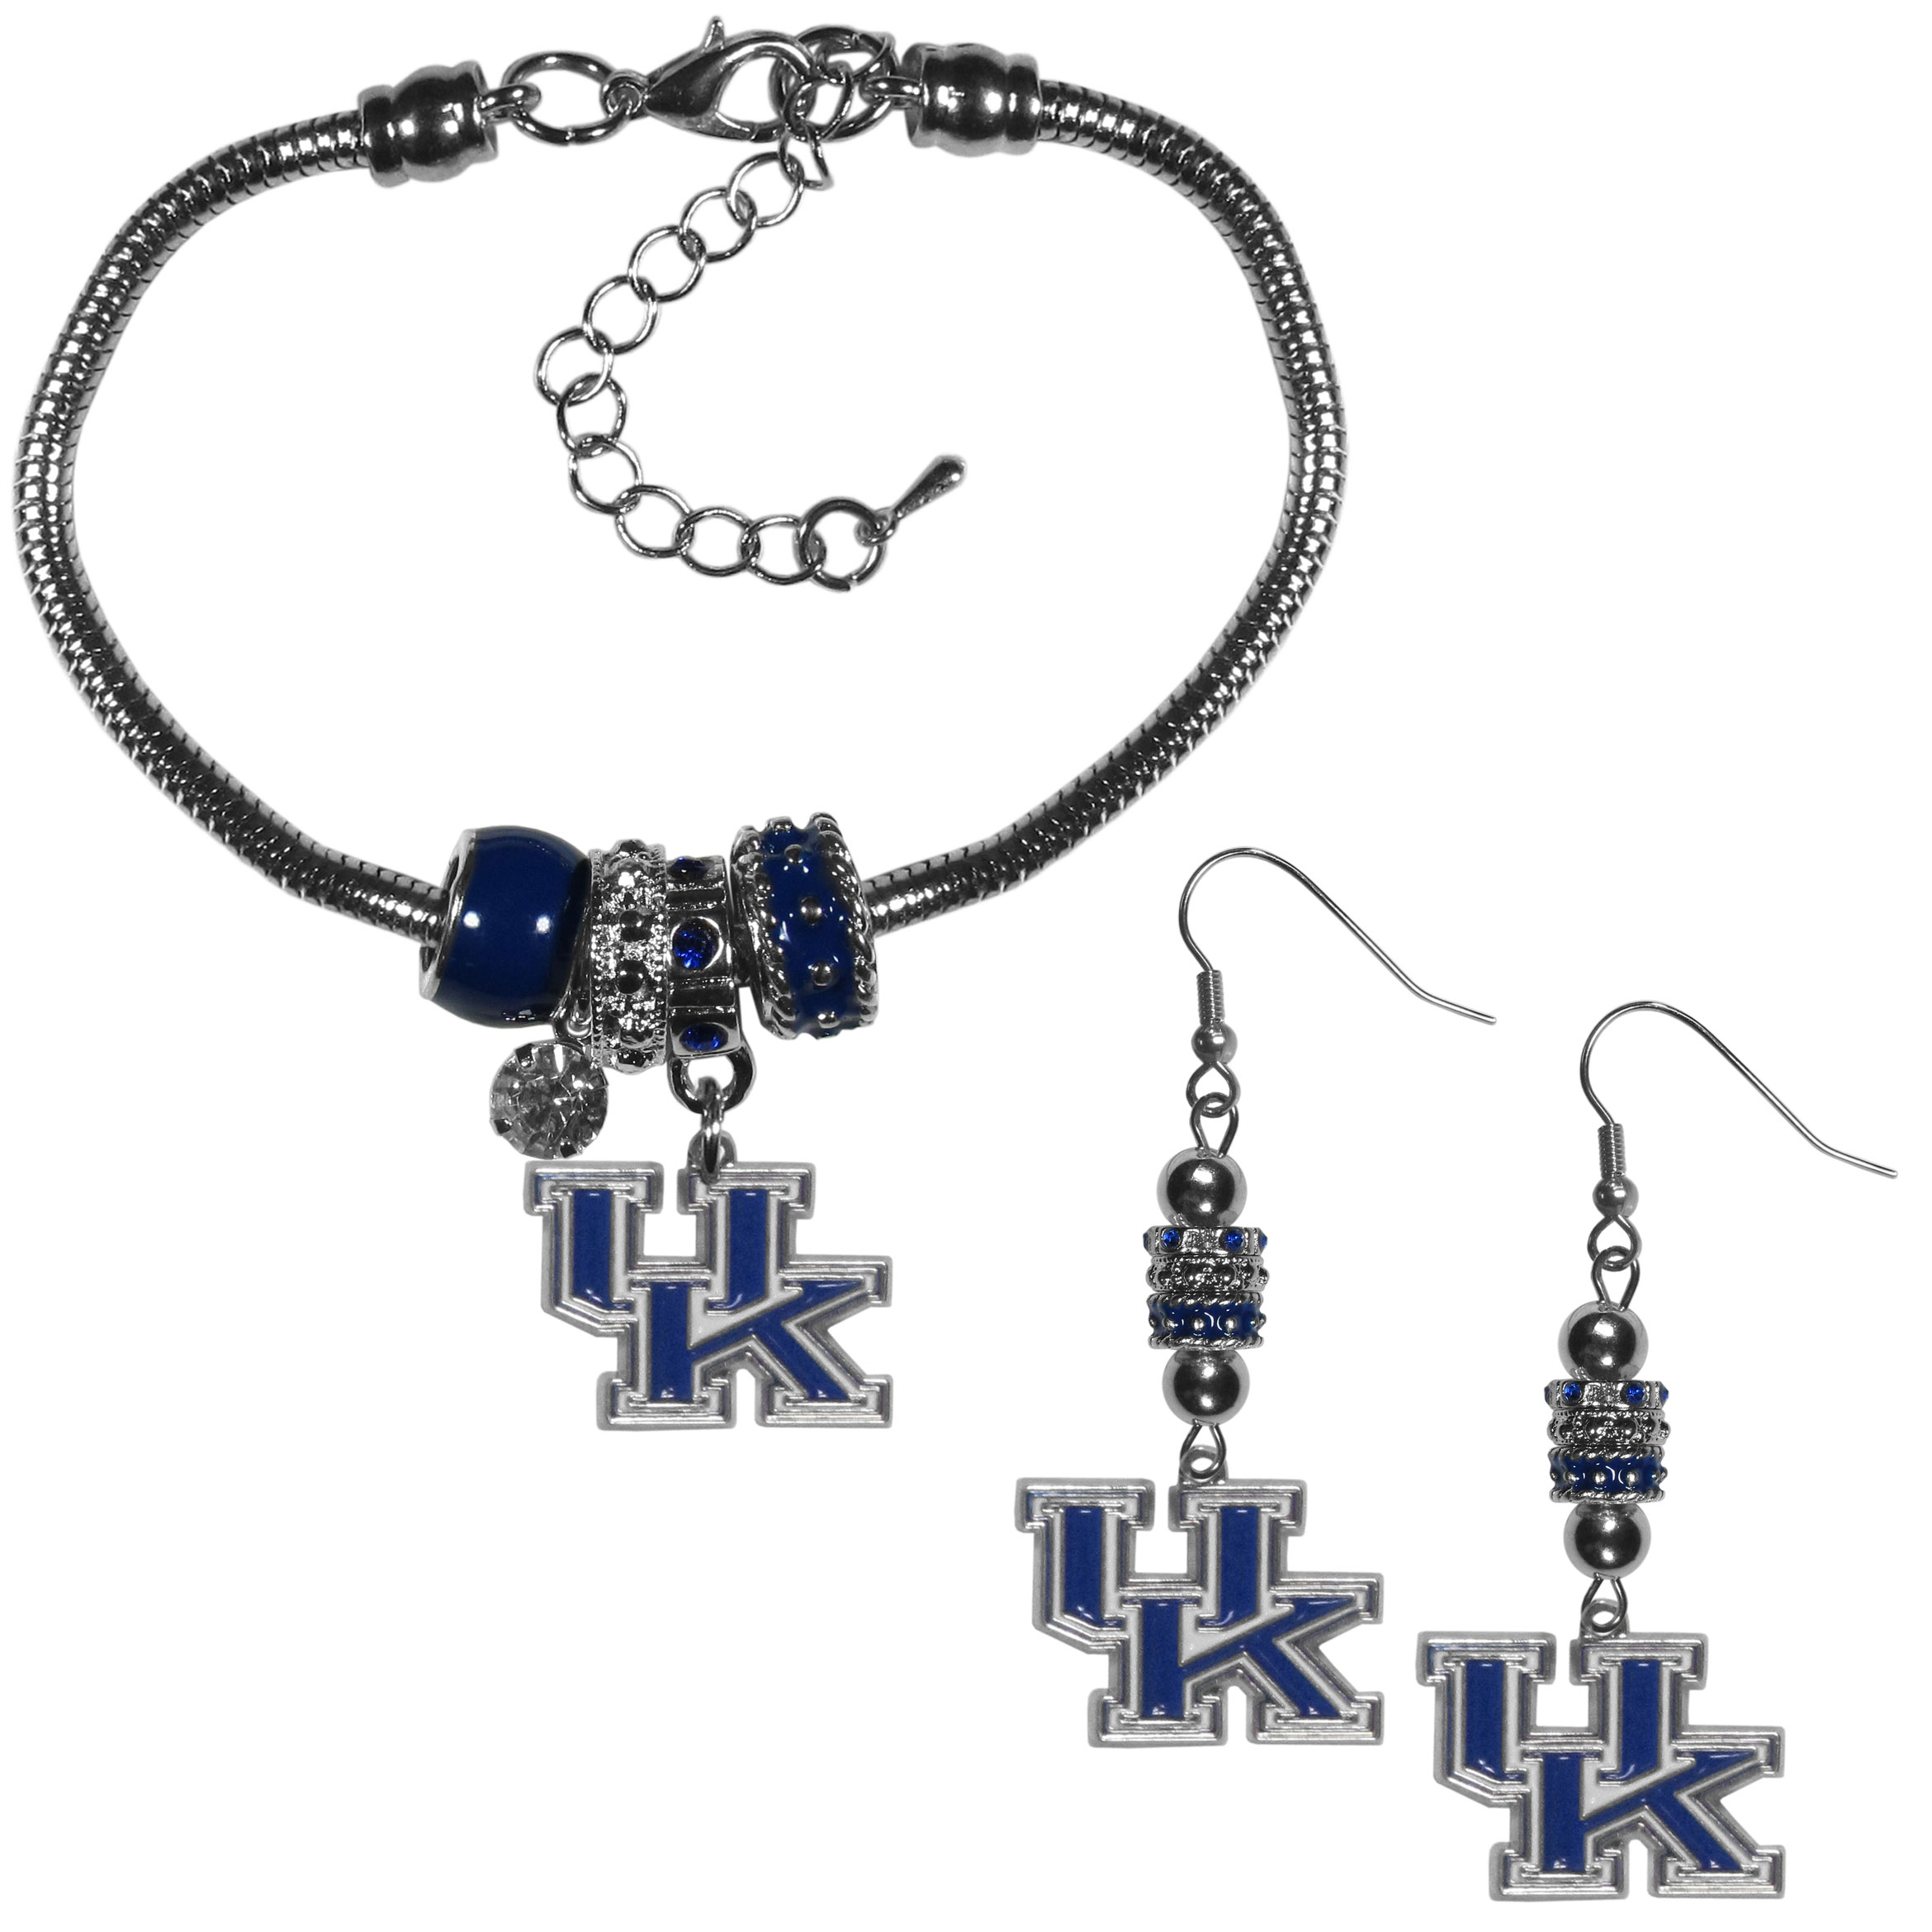 Kentucky Wildcats Euro Bead Earrings and Bracelet Set - We combine the popular Euro bead style with your love of the Kentucky Wildcats with this beautiful jewelry set that includes earrings and a matching bracelet. The stylish earrings feature hypoallergenic, nickel free fishhook posts and 3 team colored Euro beads and a metal team charm. The matching snake chain bracelet is 7.5 inches long with a 2 inch extender and 4 Euro beads with a rhinestone charm and team charm.